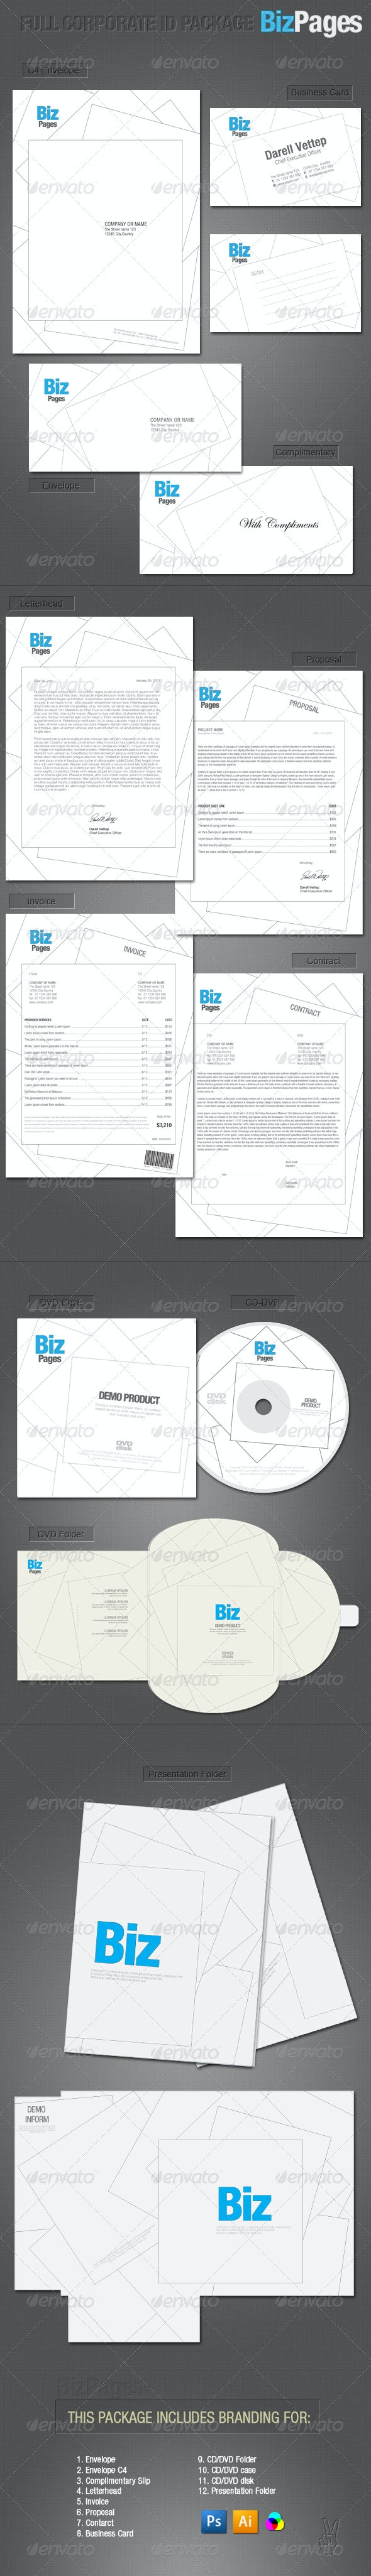 FULL CORPORATE ID PACKAGE-BIZPAGES - Stationery Print Templates